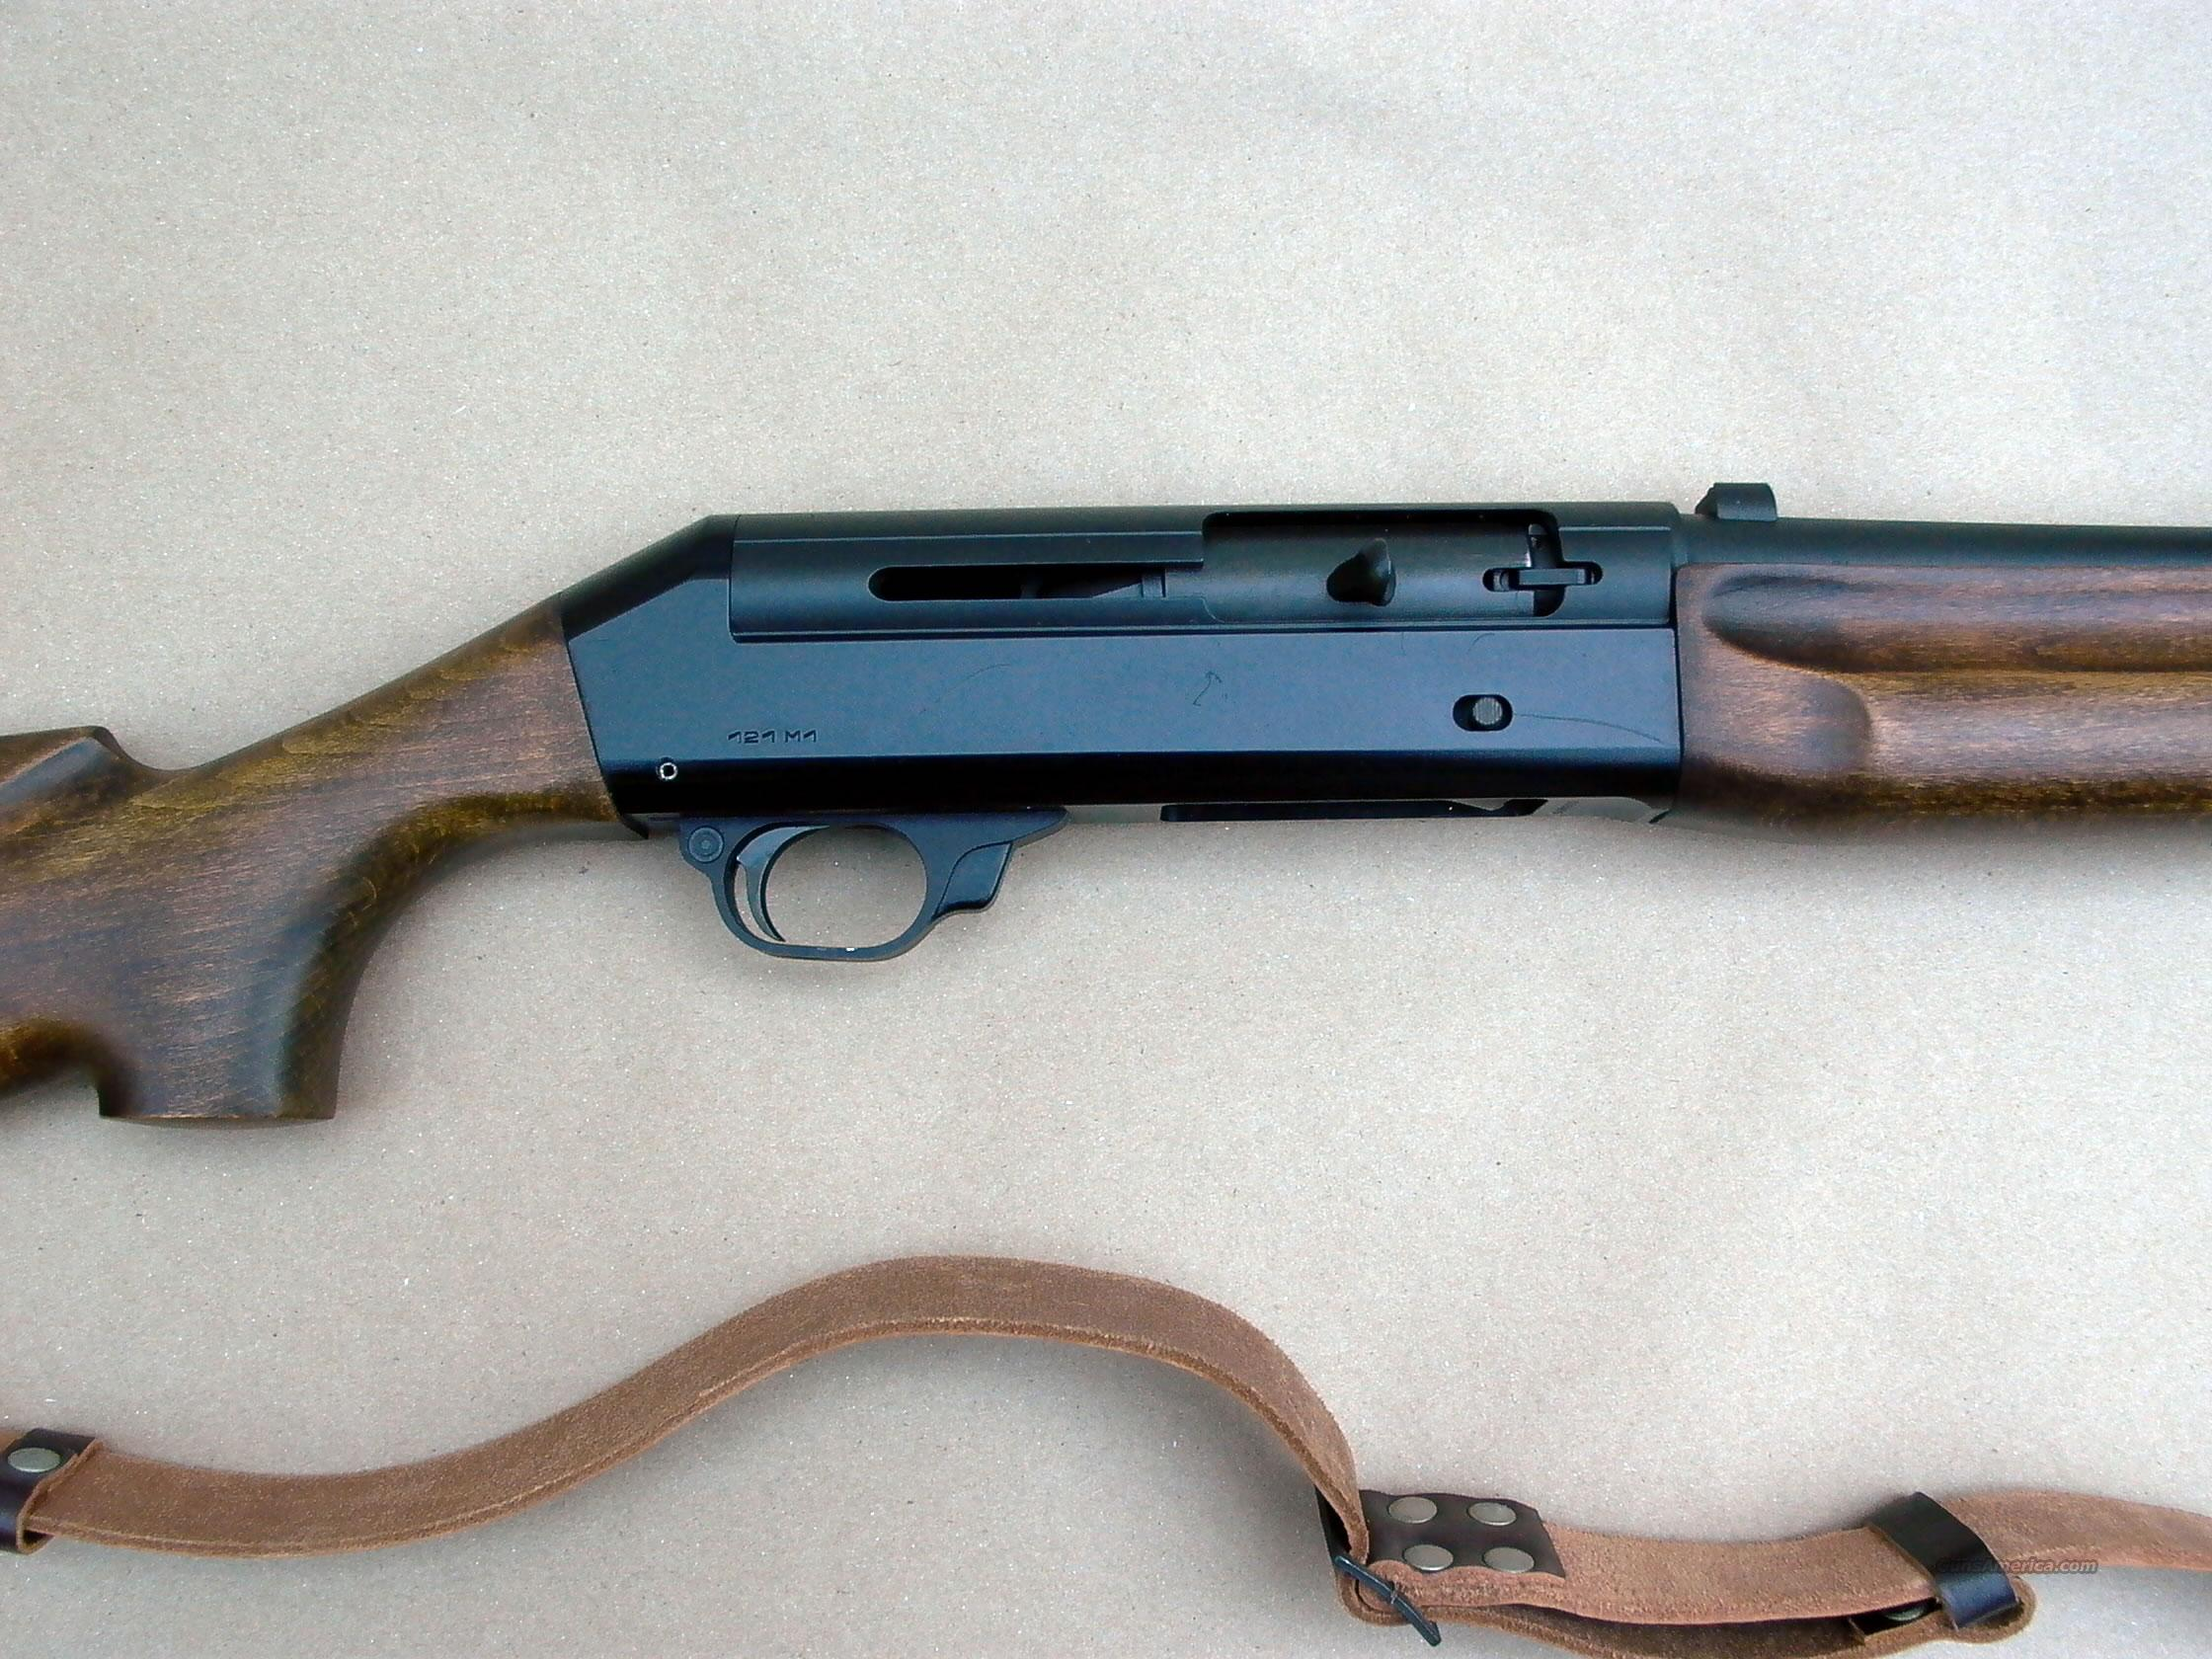 Benelli M21 M1 Tactical Shotgun 12 GA Excellent!  Guns > Shotguns > Benelli Shotguns > Tactical